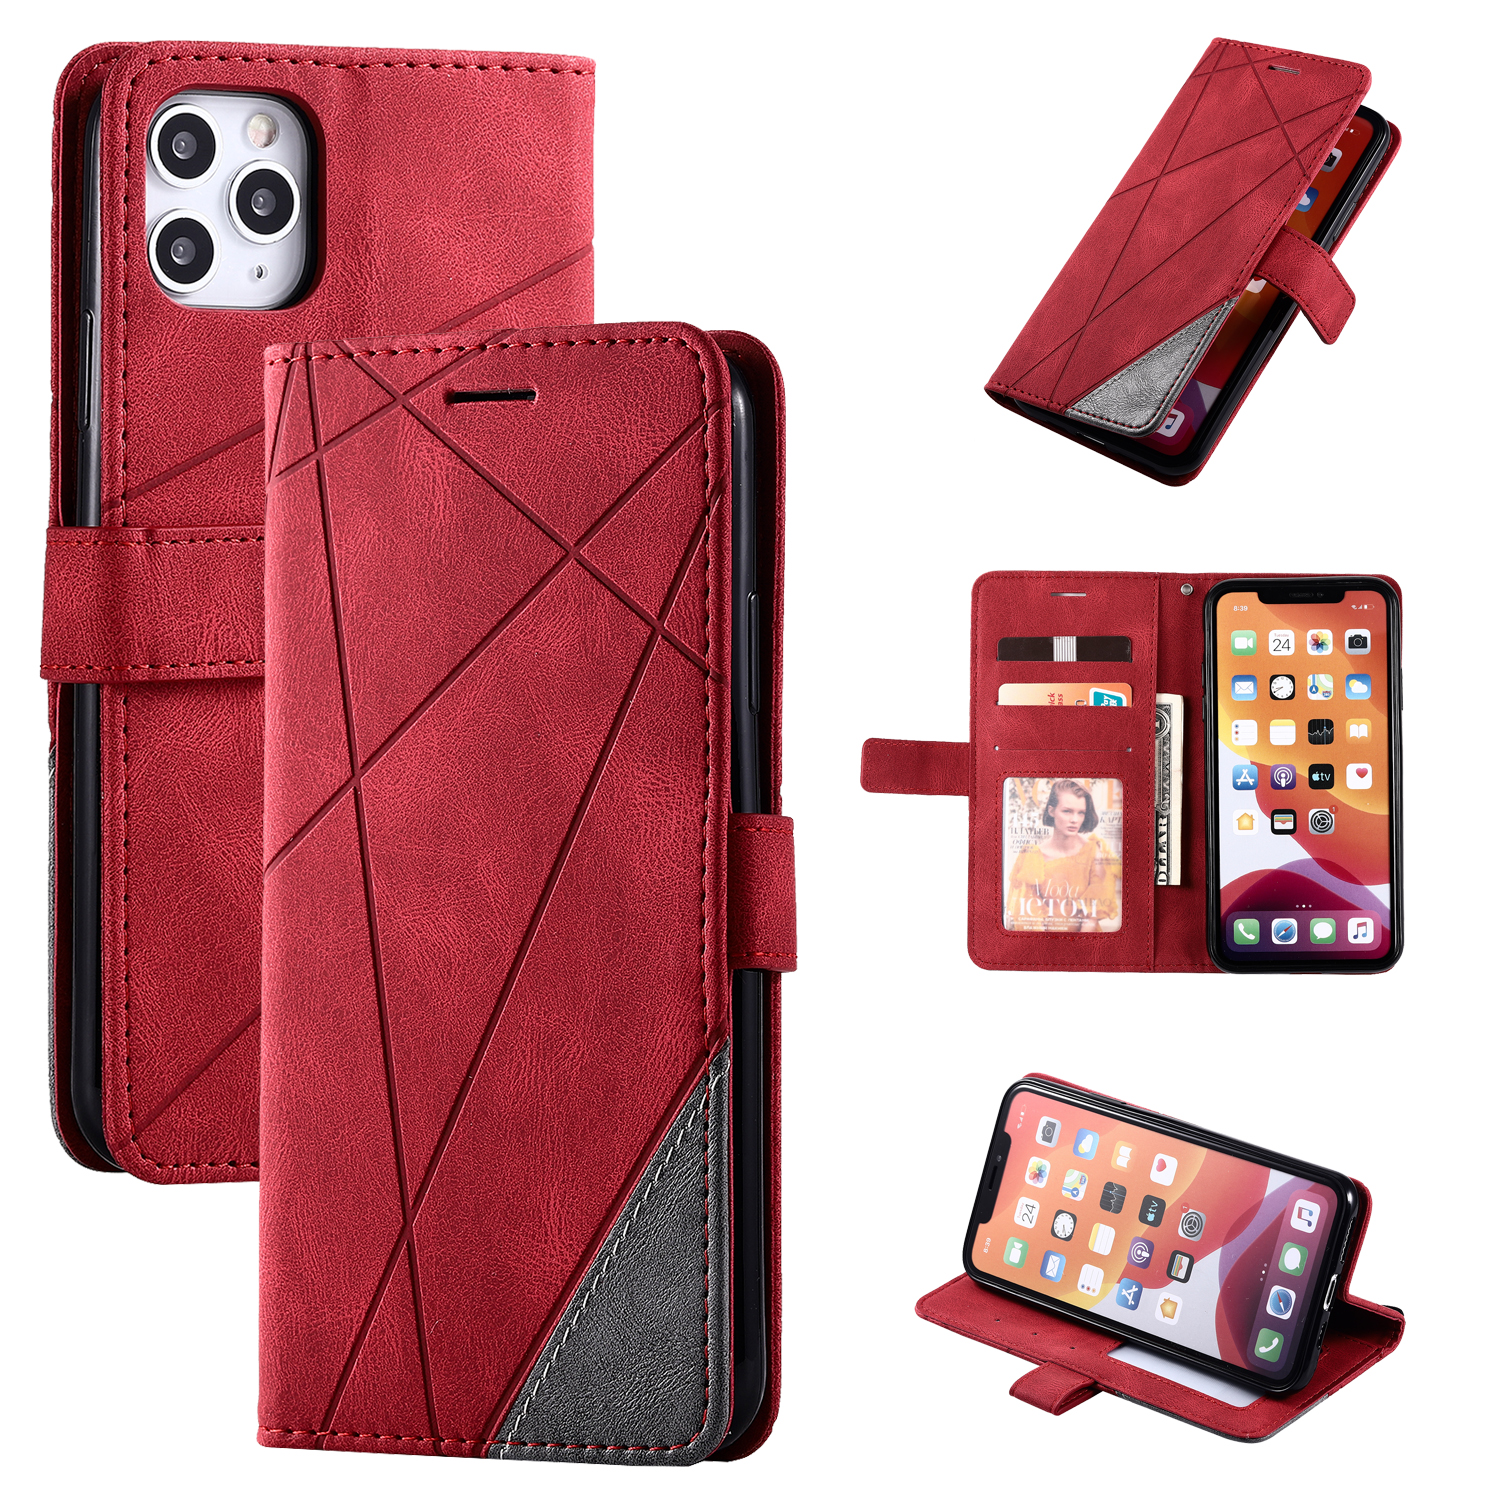 Stand Business Phone Holster For Etui Xiaomi 11 Poco X3 Nfc M3 Redmi Note 10 Pro 7 7A 8 8A 8T 9 Stripe Wallet Rhombus Case D21G